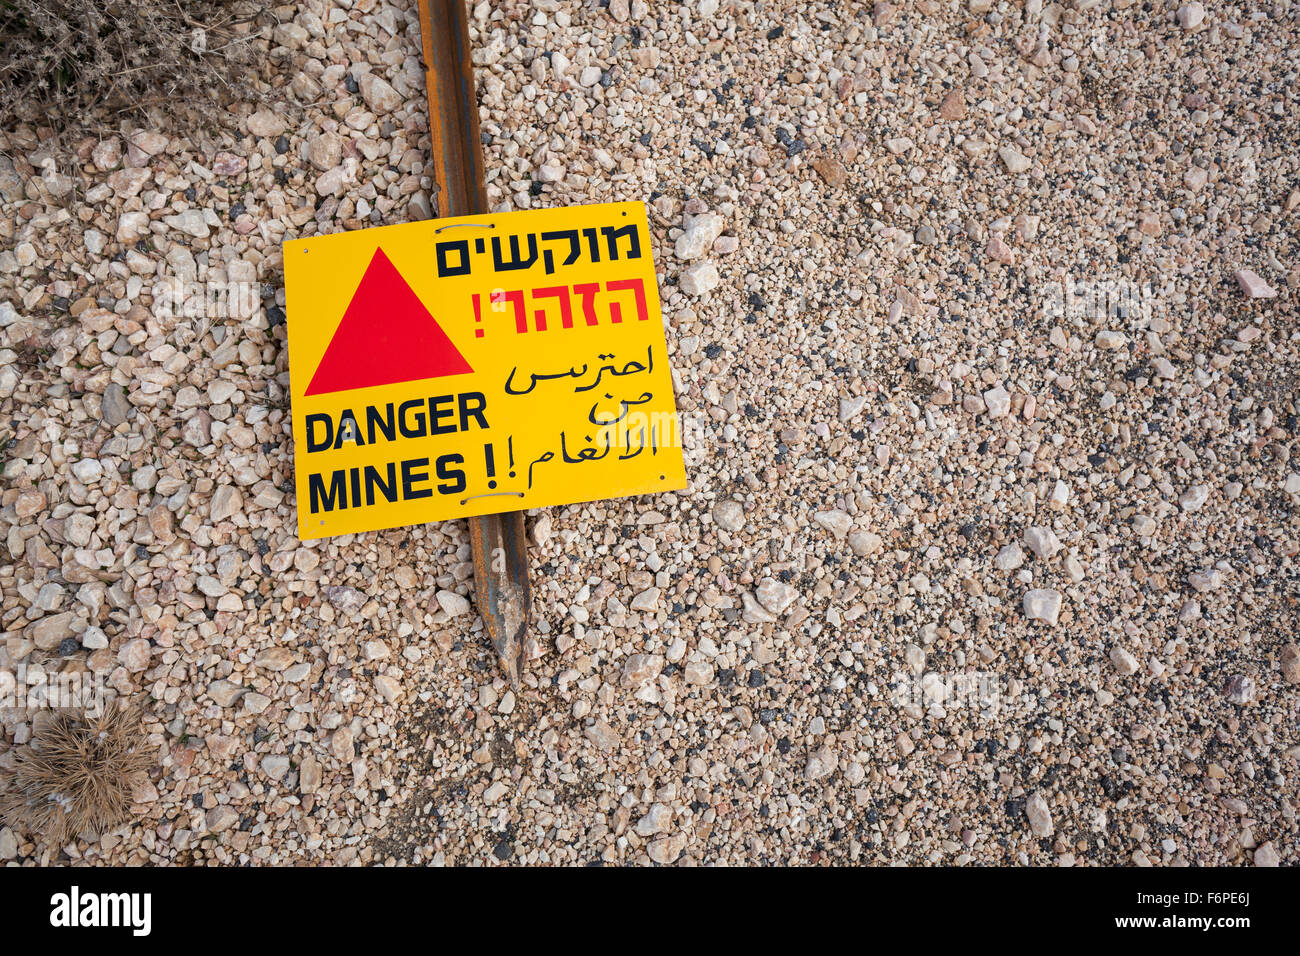 Mine field warning sign in Hebrew, Arabic and English at Mount Hermon. Golan Heights. Israel. - Stock Image